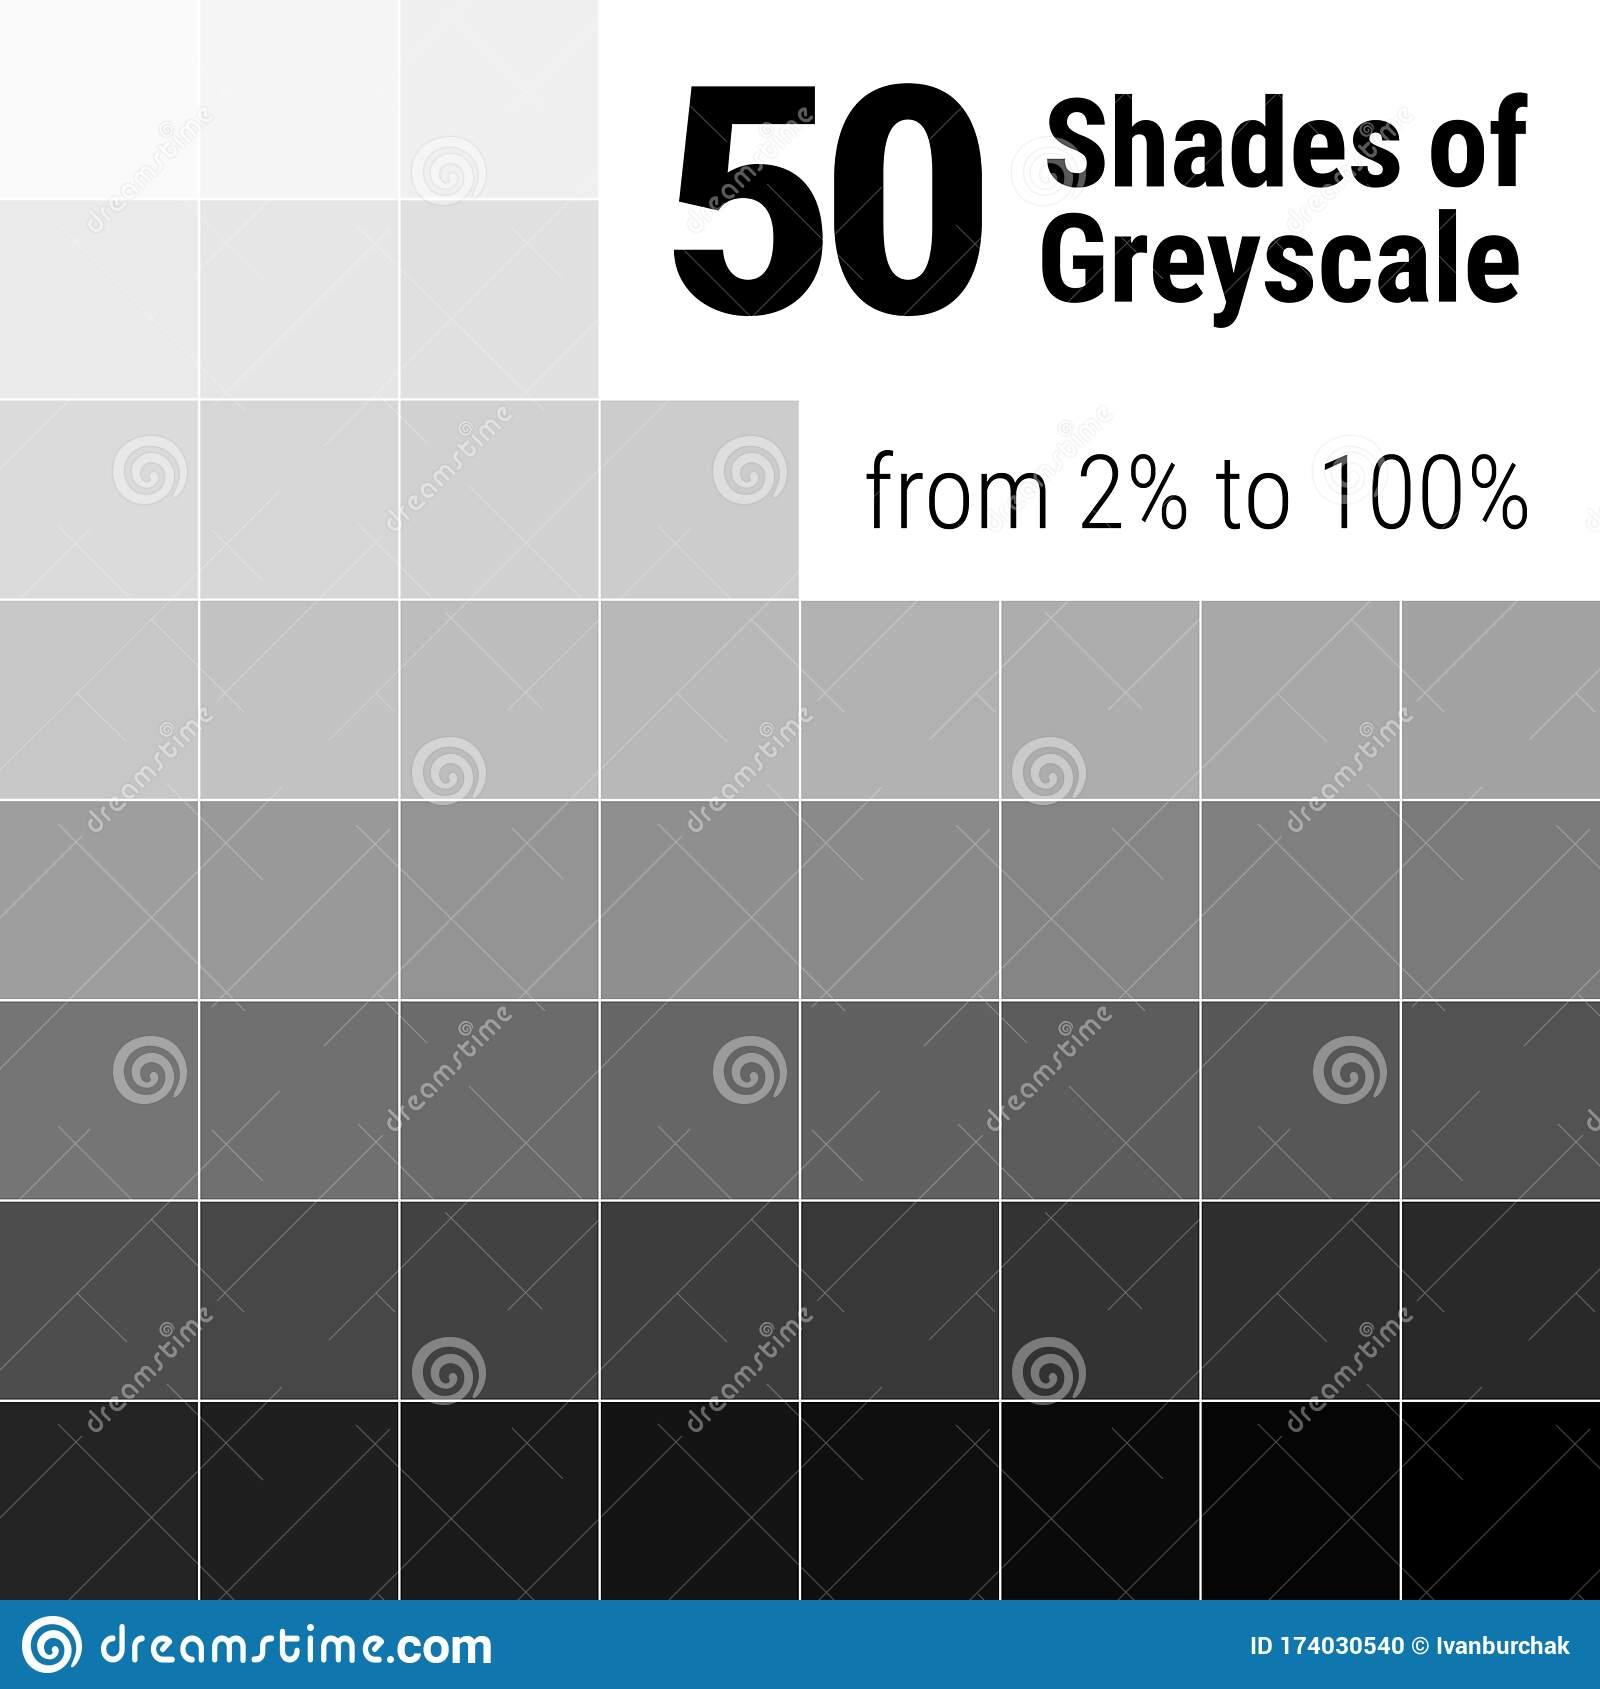 Greyscale Palette 50 Shades Of Grey Grey Colors Palette Color Shade Chart Vector Illustration Stock Vector Illustration Of Percent Background 174030540